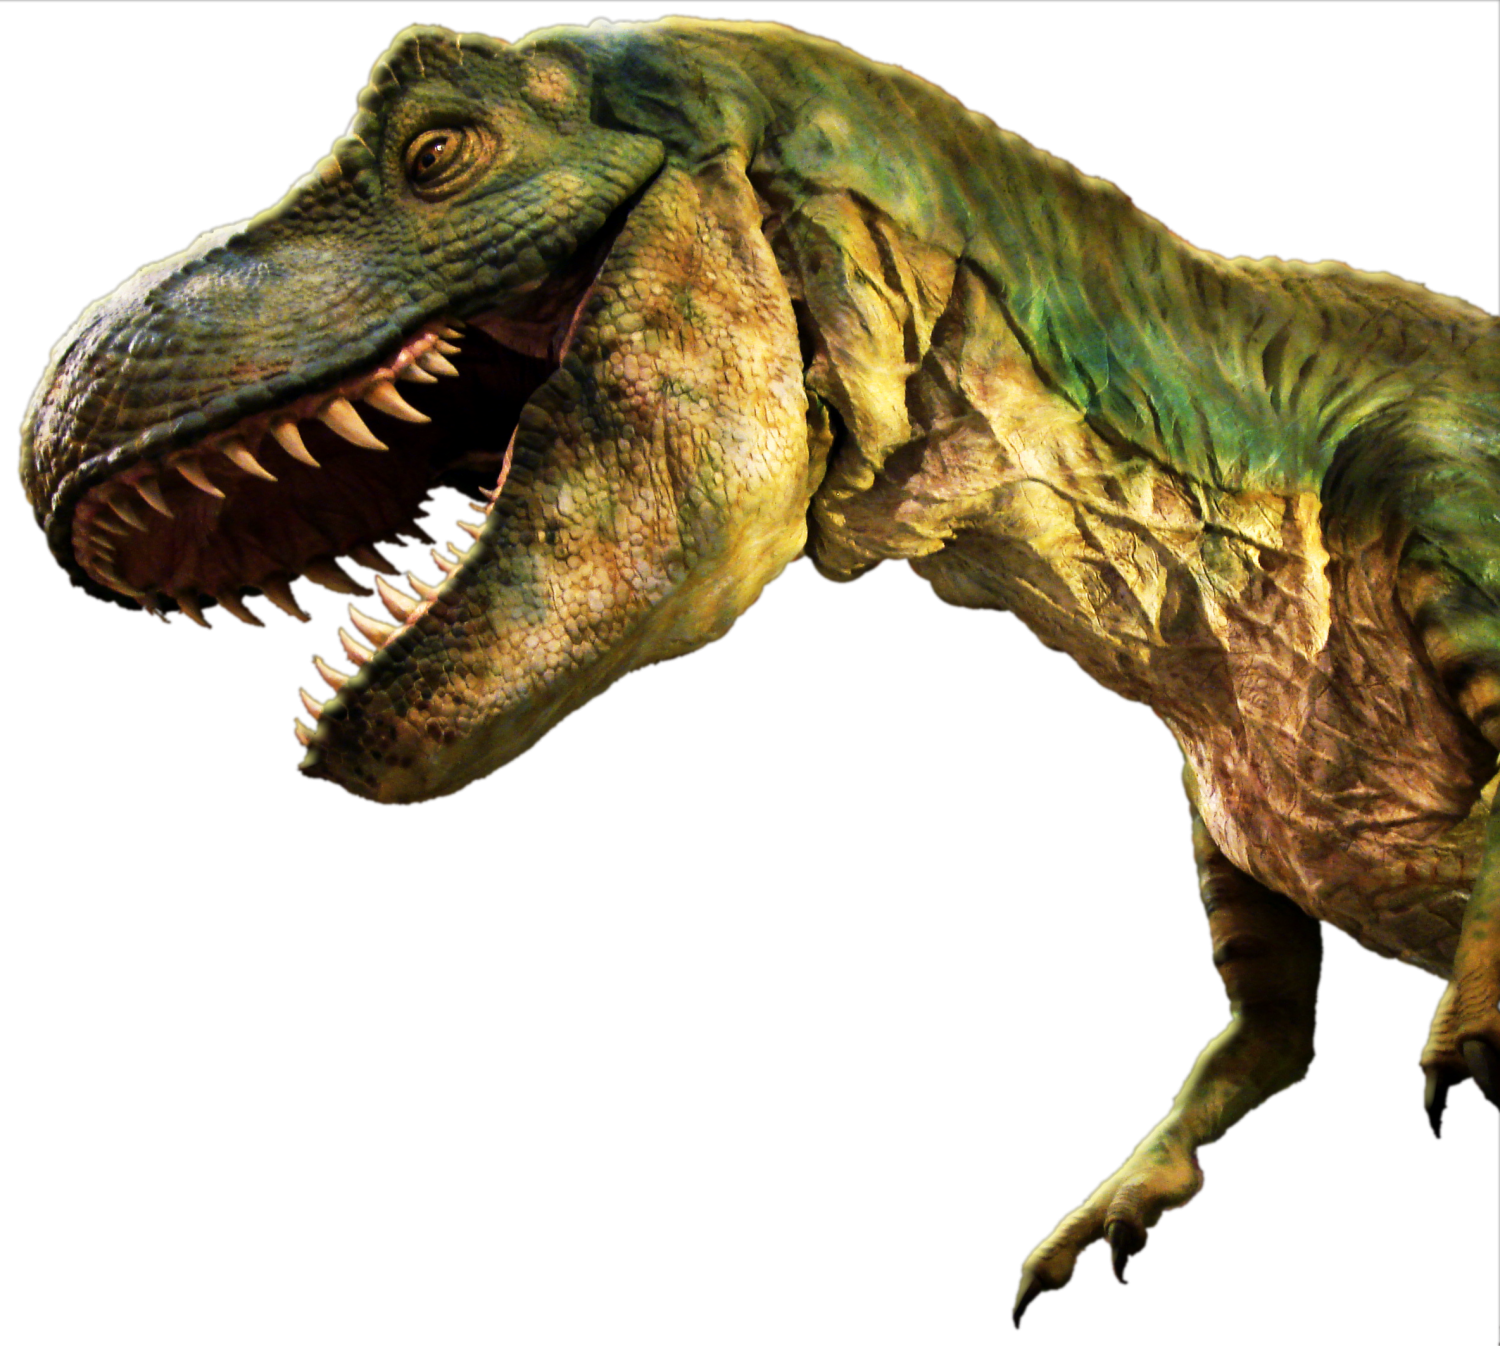 Grab and download Dinosaur High Quality PNG